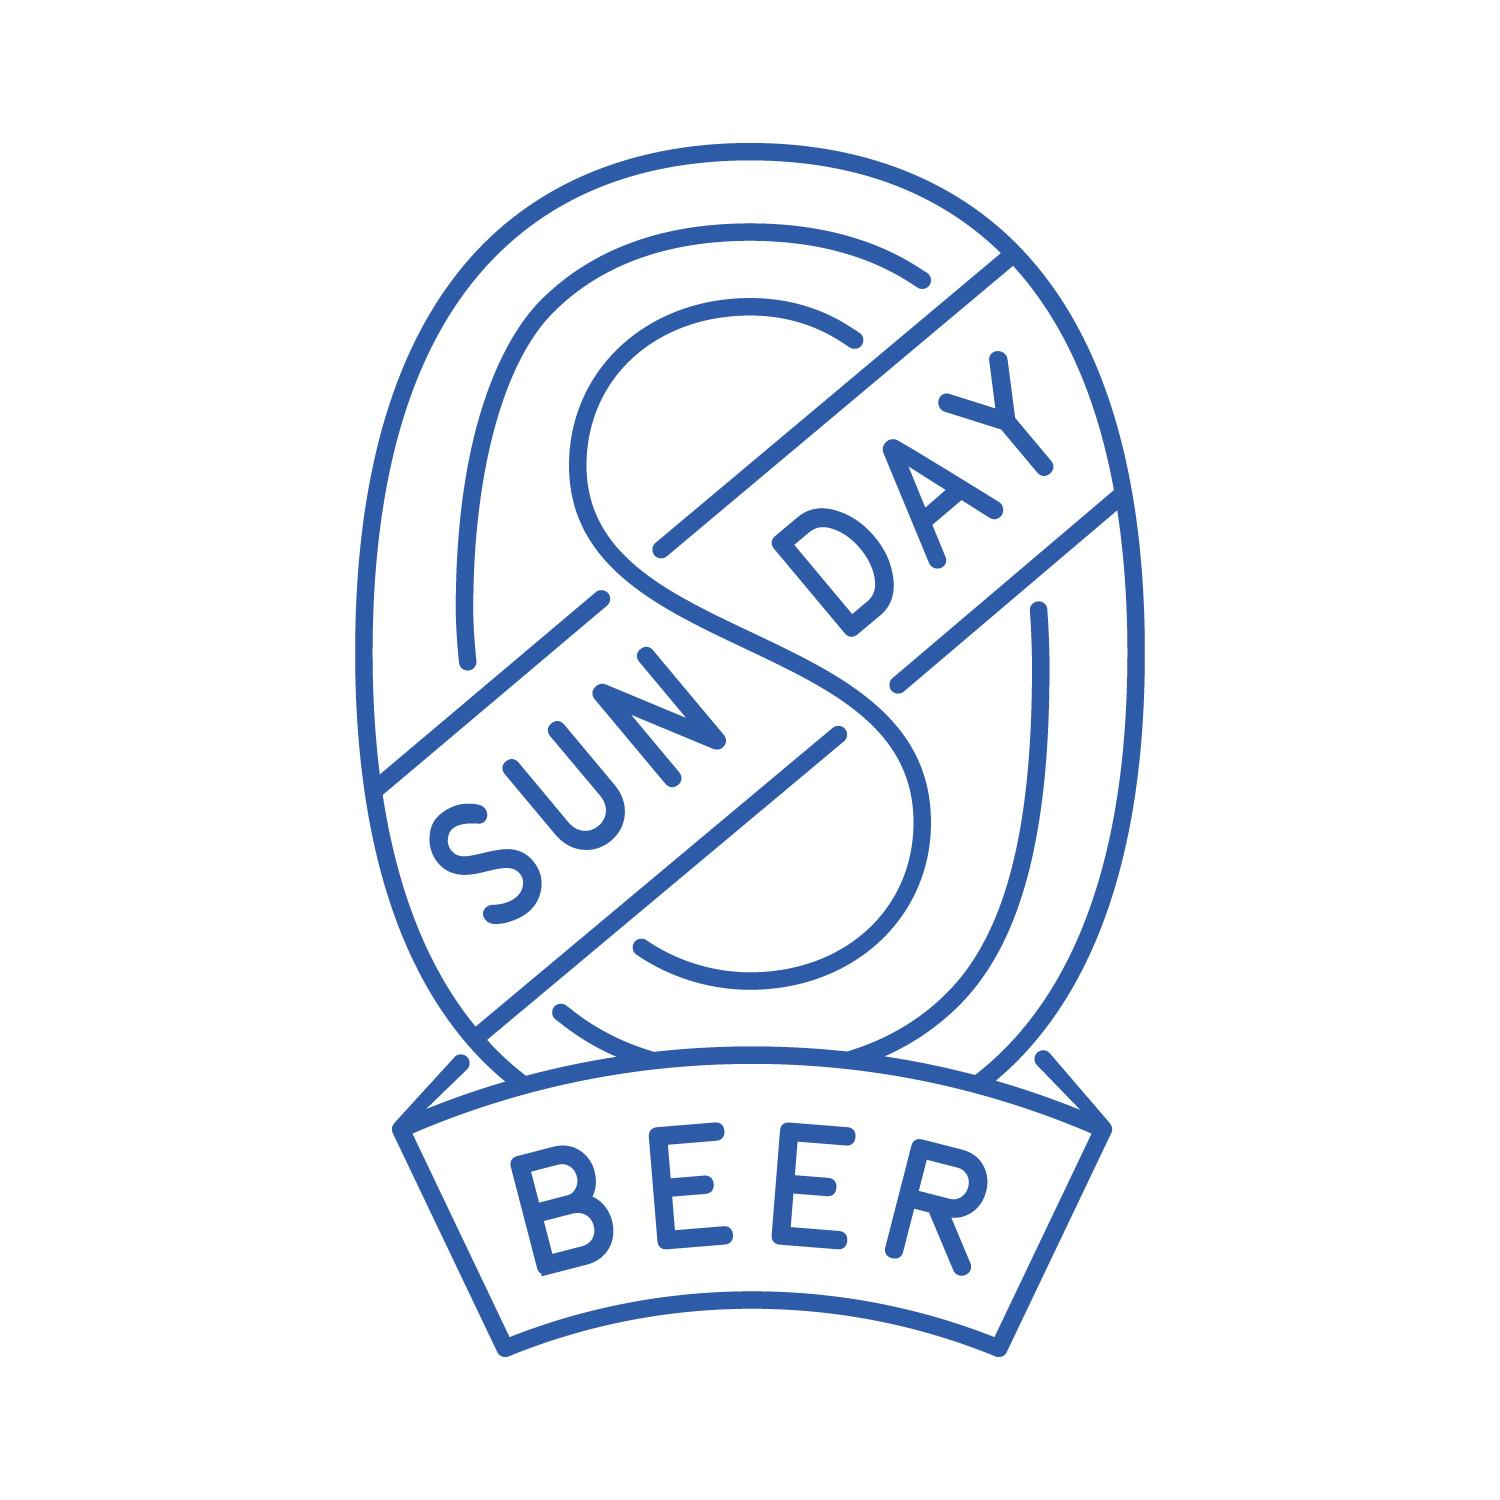 Sunday Beer Co. logo